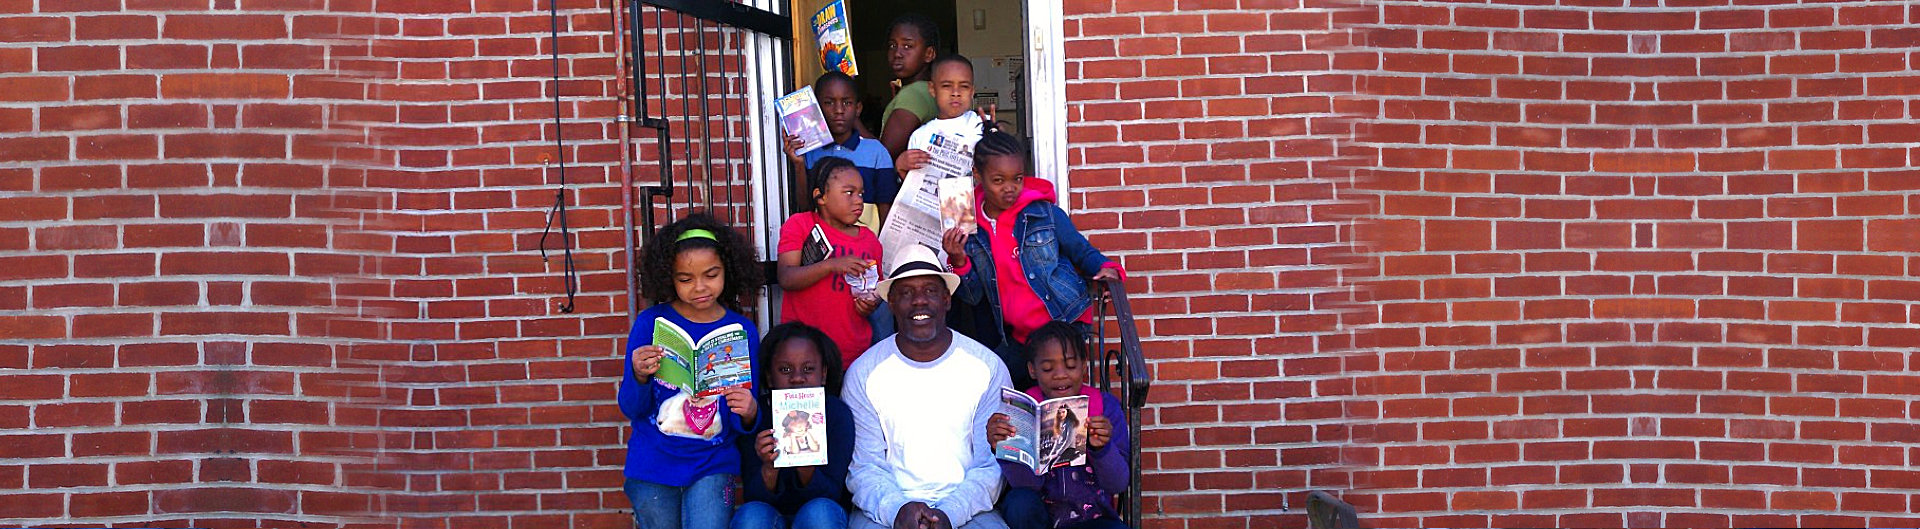 Mr. ashby with students holding book